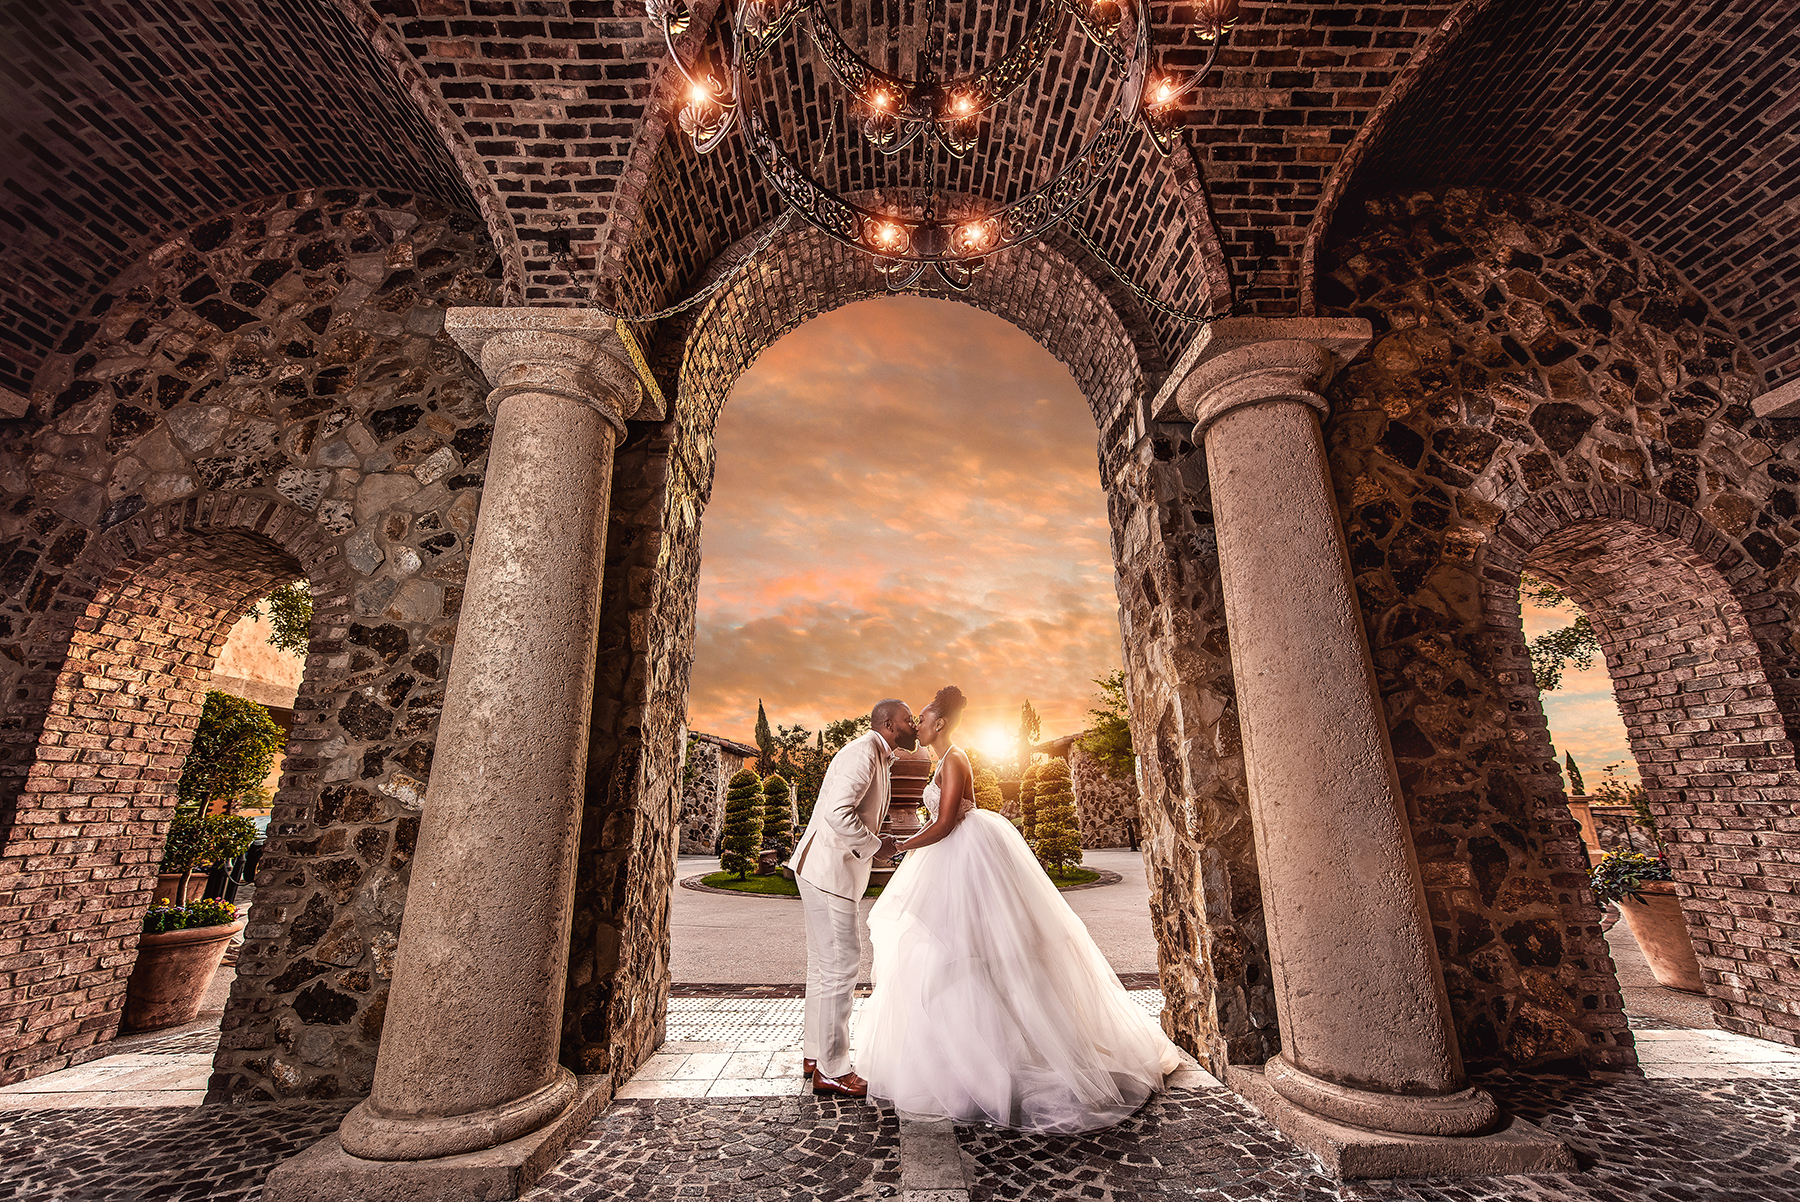 50 Wedding Photography Blogs to Promote Your Wedding Photography Services